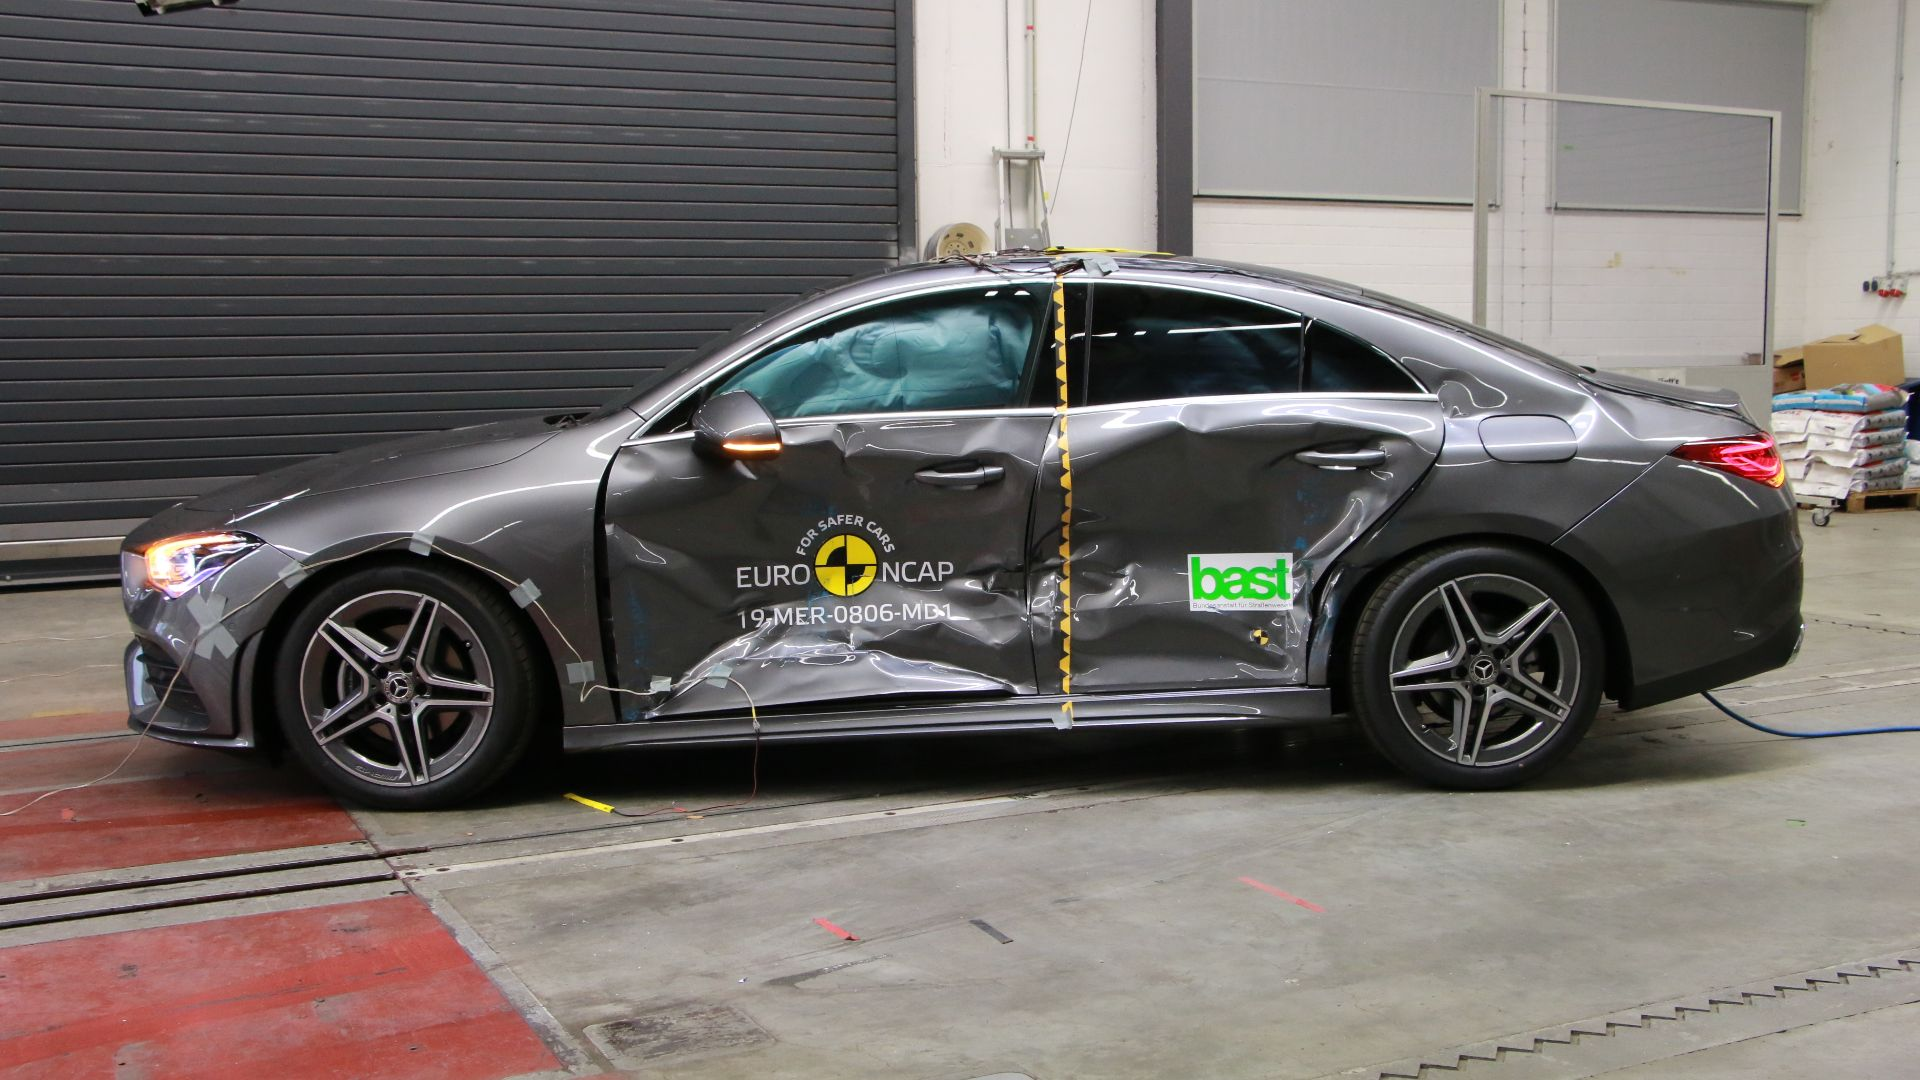 Euro NCAP safest cars of last year